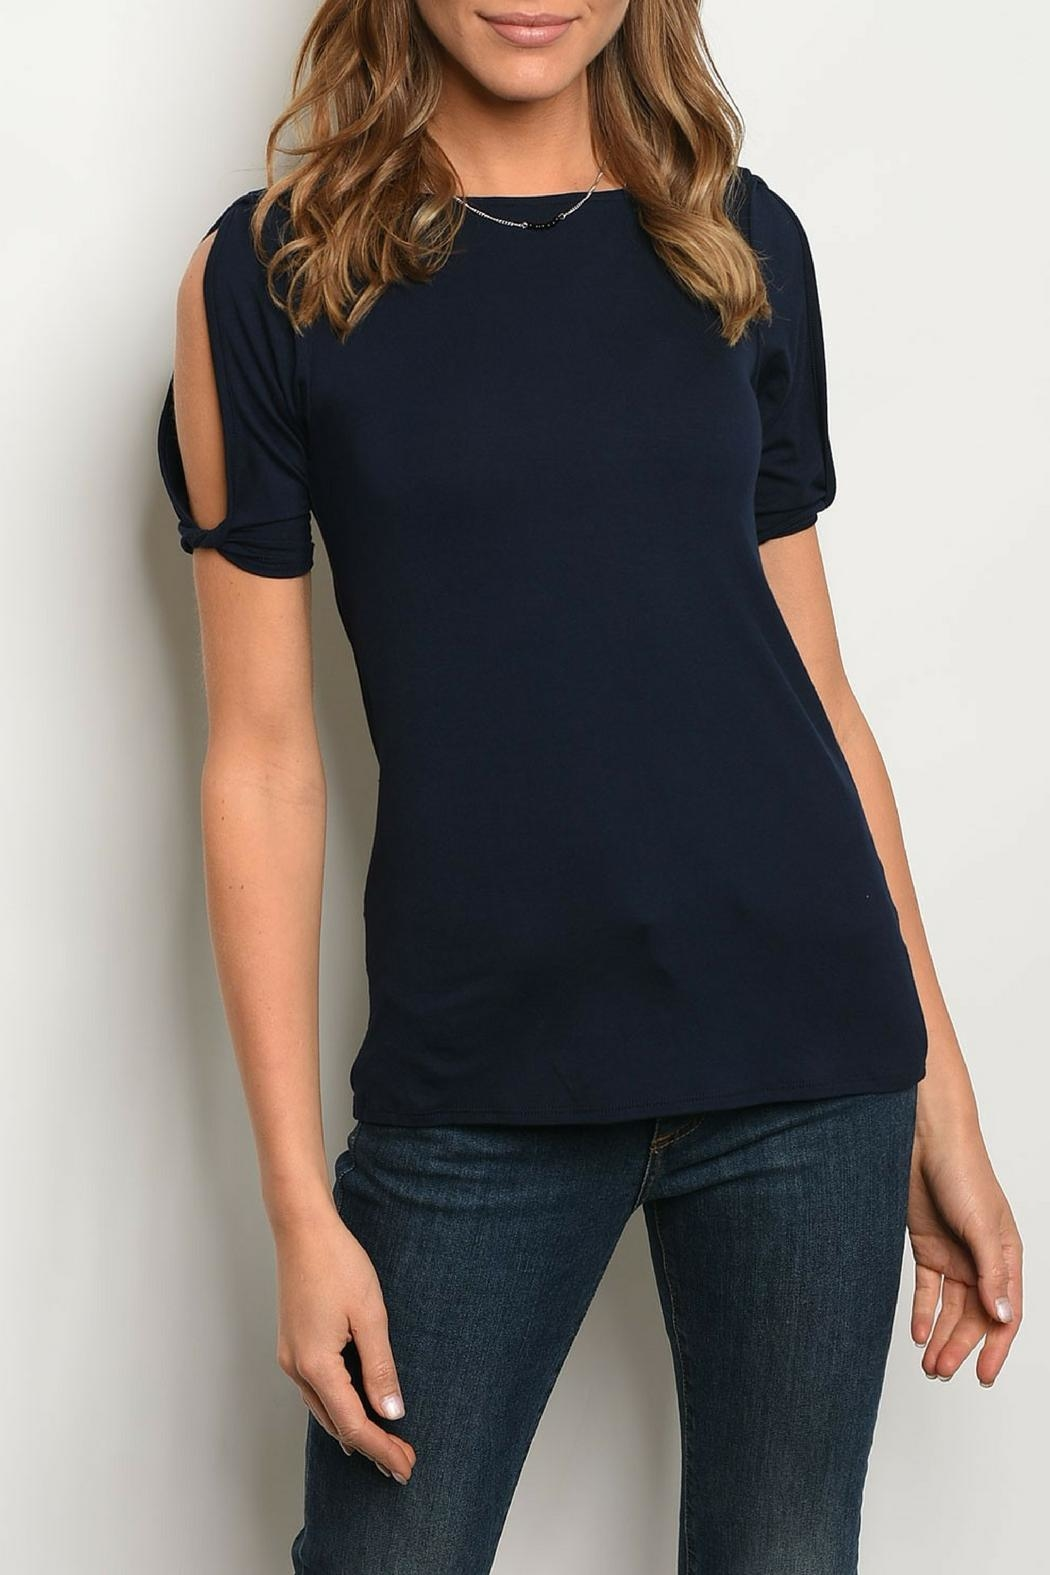 245dc99ad74 Les Amis Navy Top from Kansas by twill tradE — Shoptiques